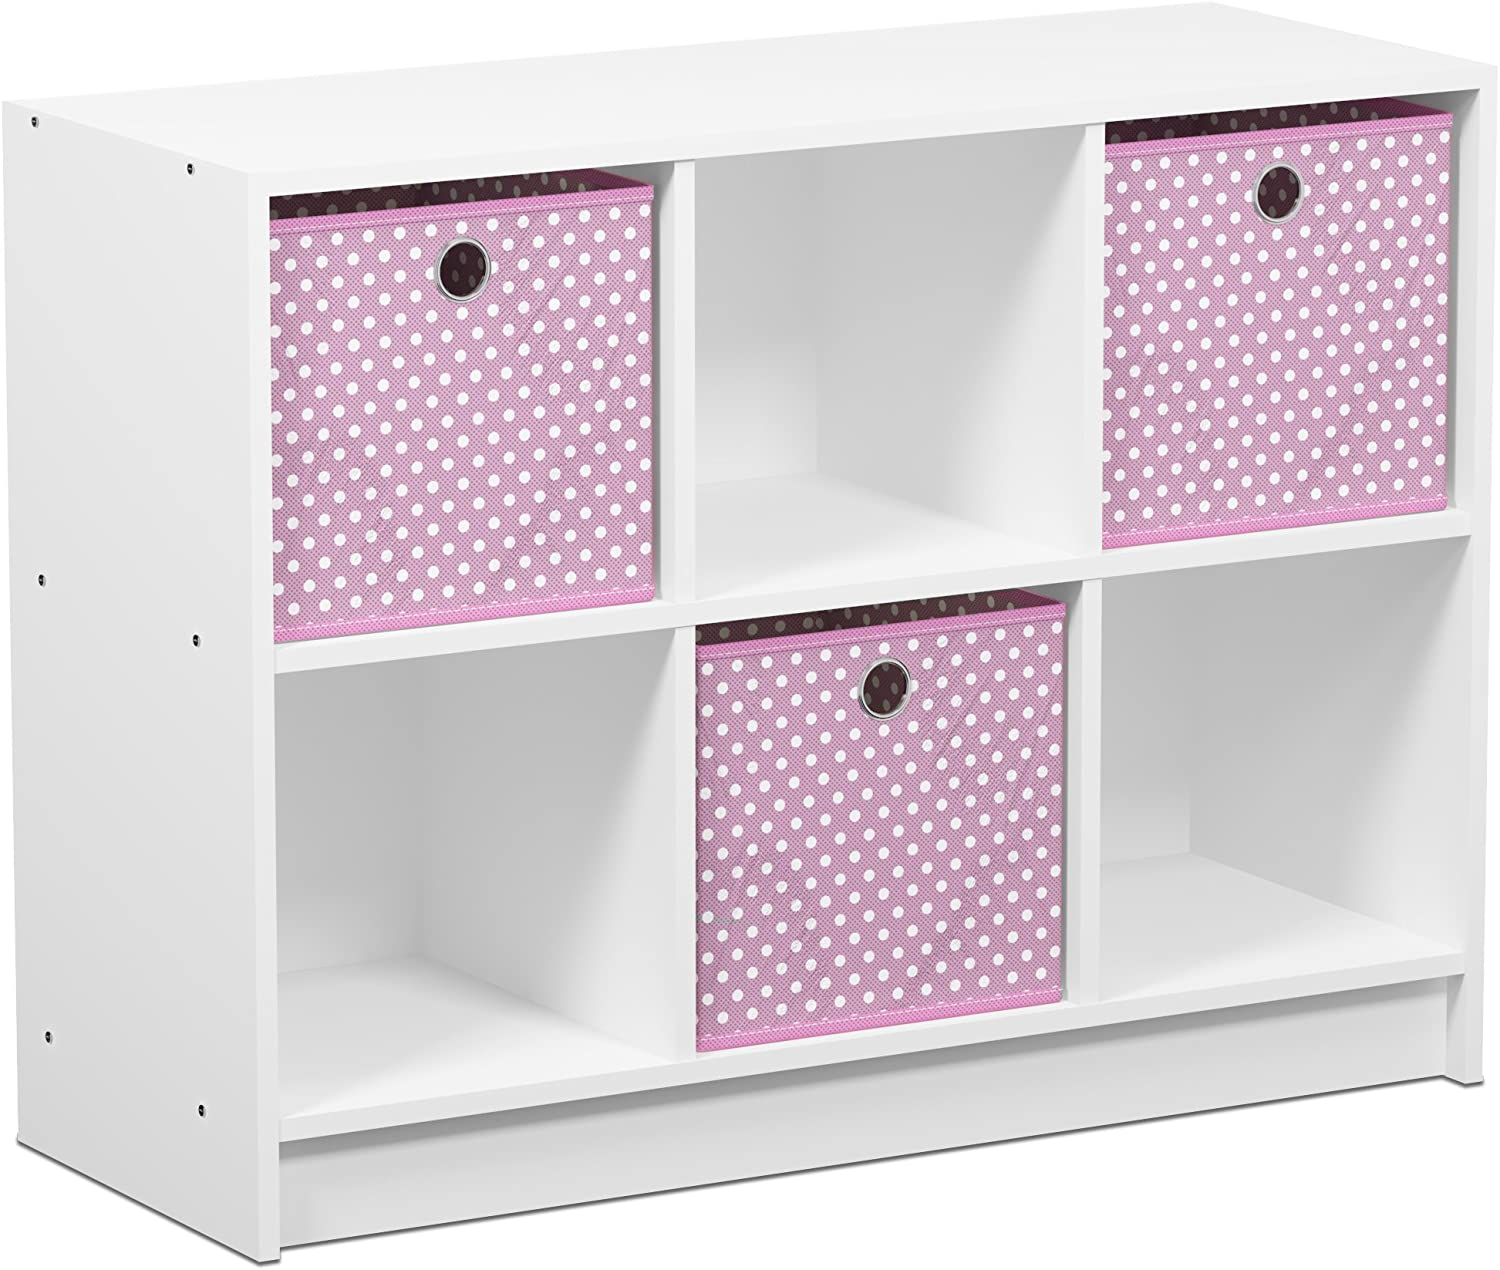 FURINNO Basic 3x2 Cubic Bookcase Storage Shelves, White/Light Pink,99940WH/LPI